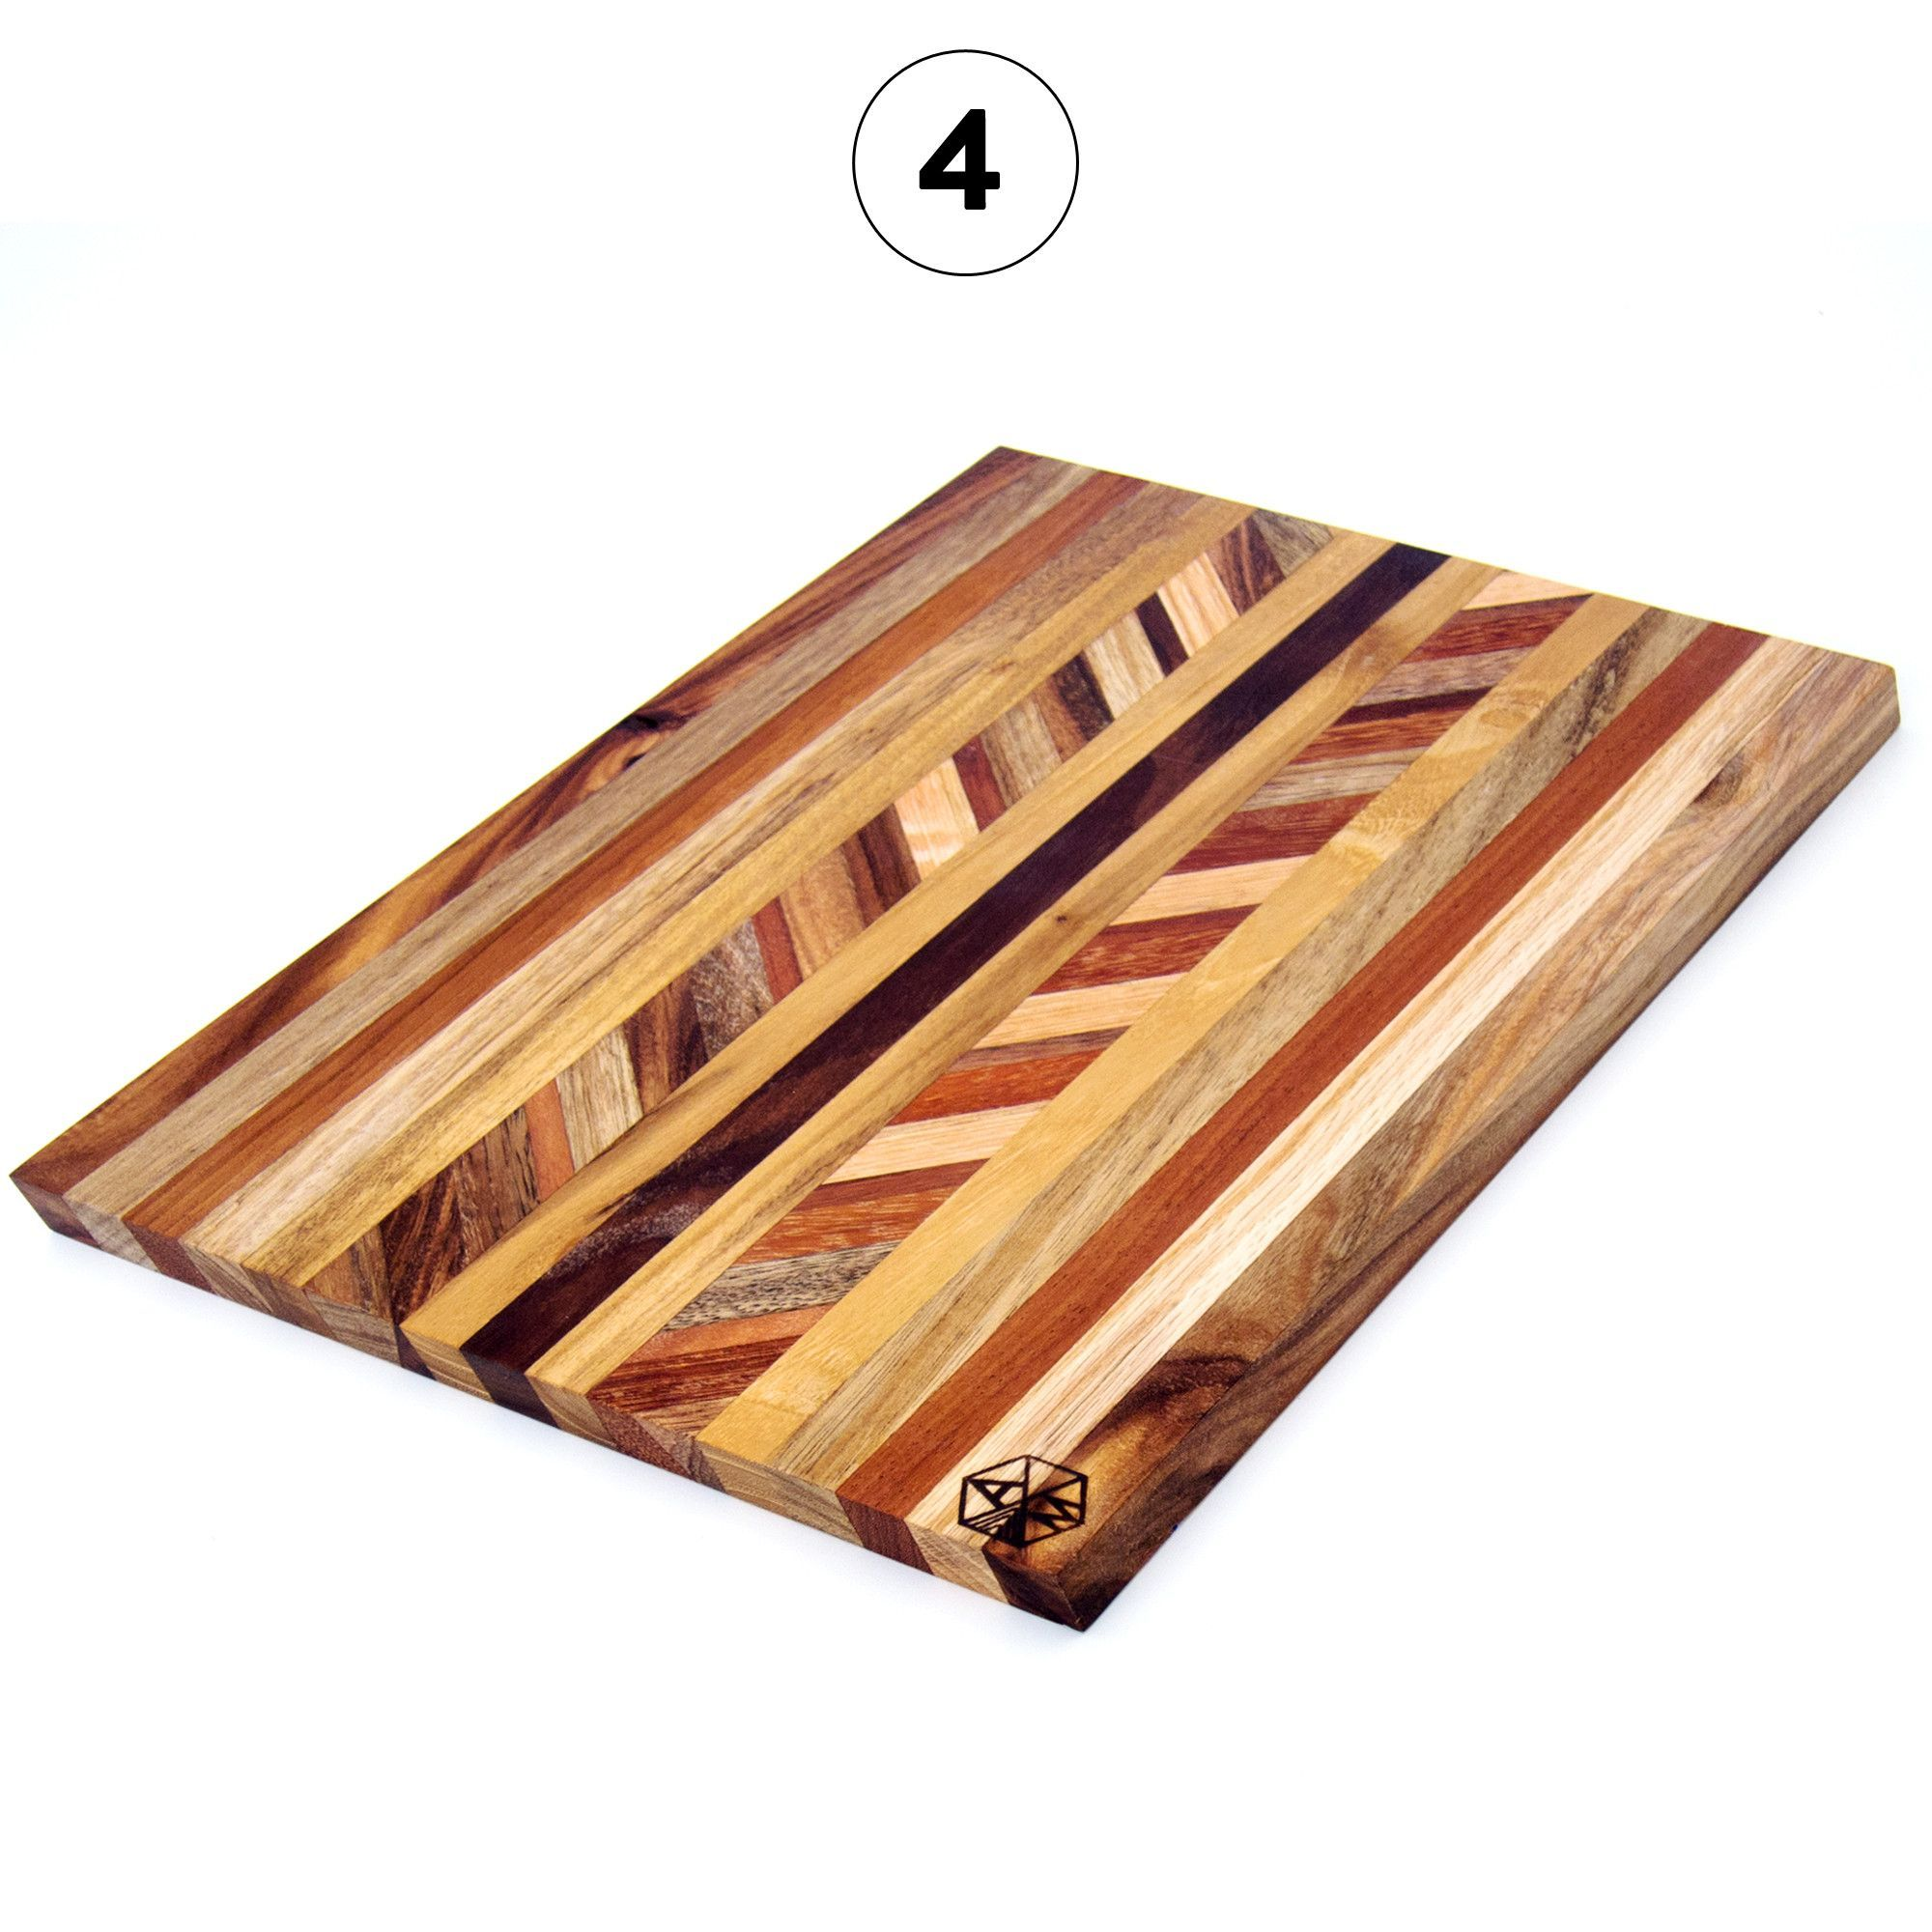 10+ Wood cutting boards for crafts ideas in 2021